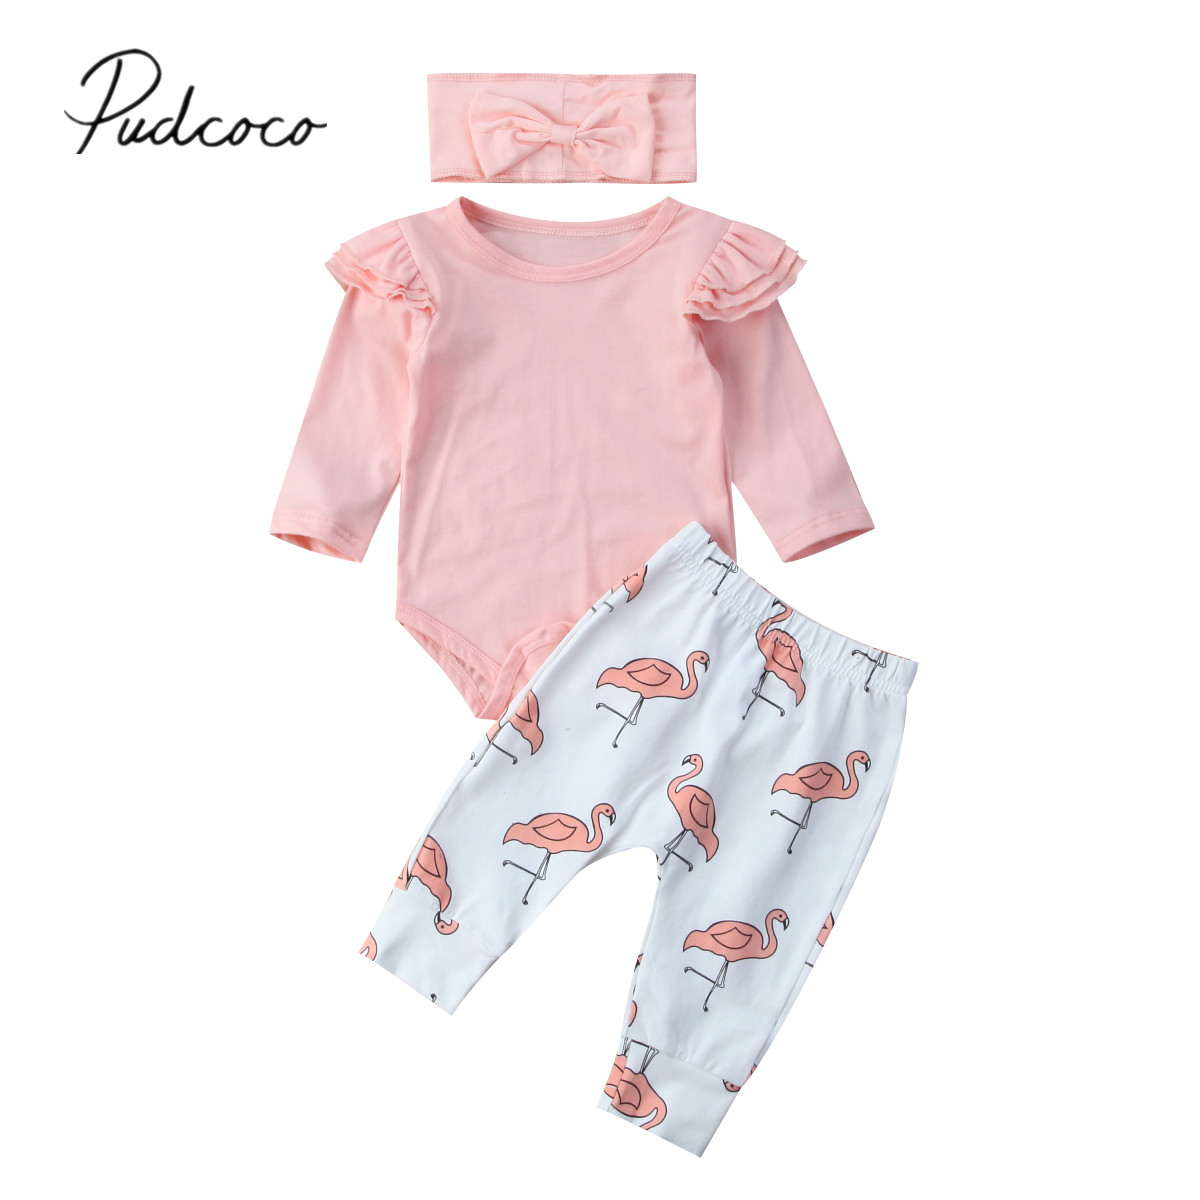 2017 Brand New Infant Toddler Newborn Baby Girls Romper Long Sleeve Tops Flamingo Pants Headband 3PCS Clothes Set Outfits 0-18M us stock floral newborn baby girls lace romper pants headband outfit set clothes infant toddler girl brief clothing set playsuit